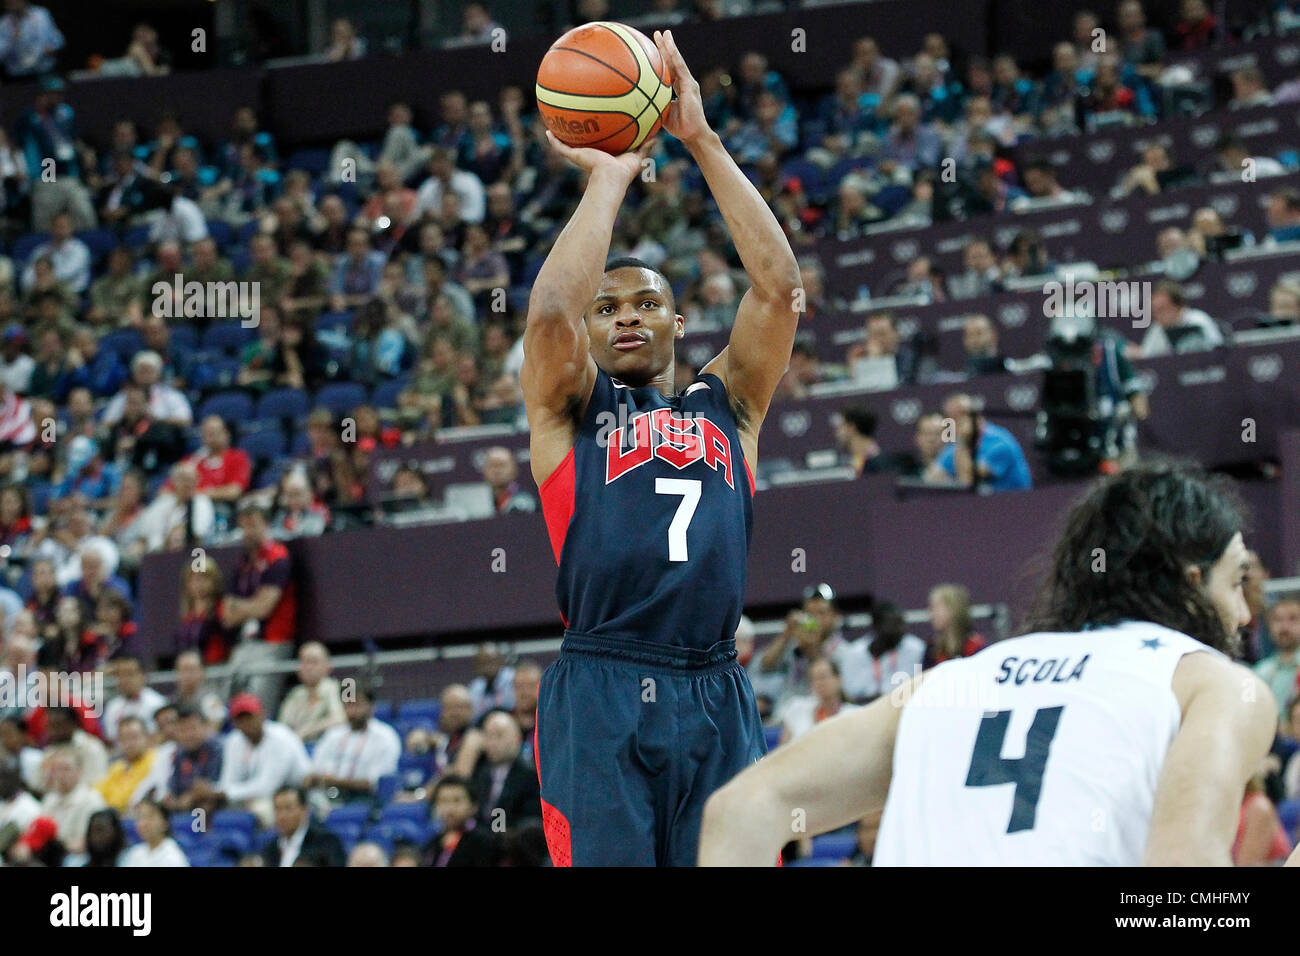 10.08.2012. London, England. USA Russell Westbrook takes a jumpshot during 109-80 Team USA victory over Team Argentina, - Stock Image